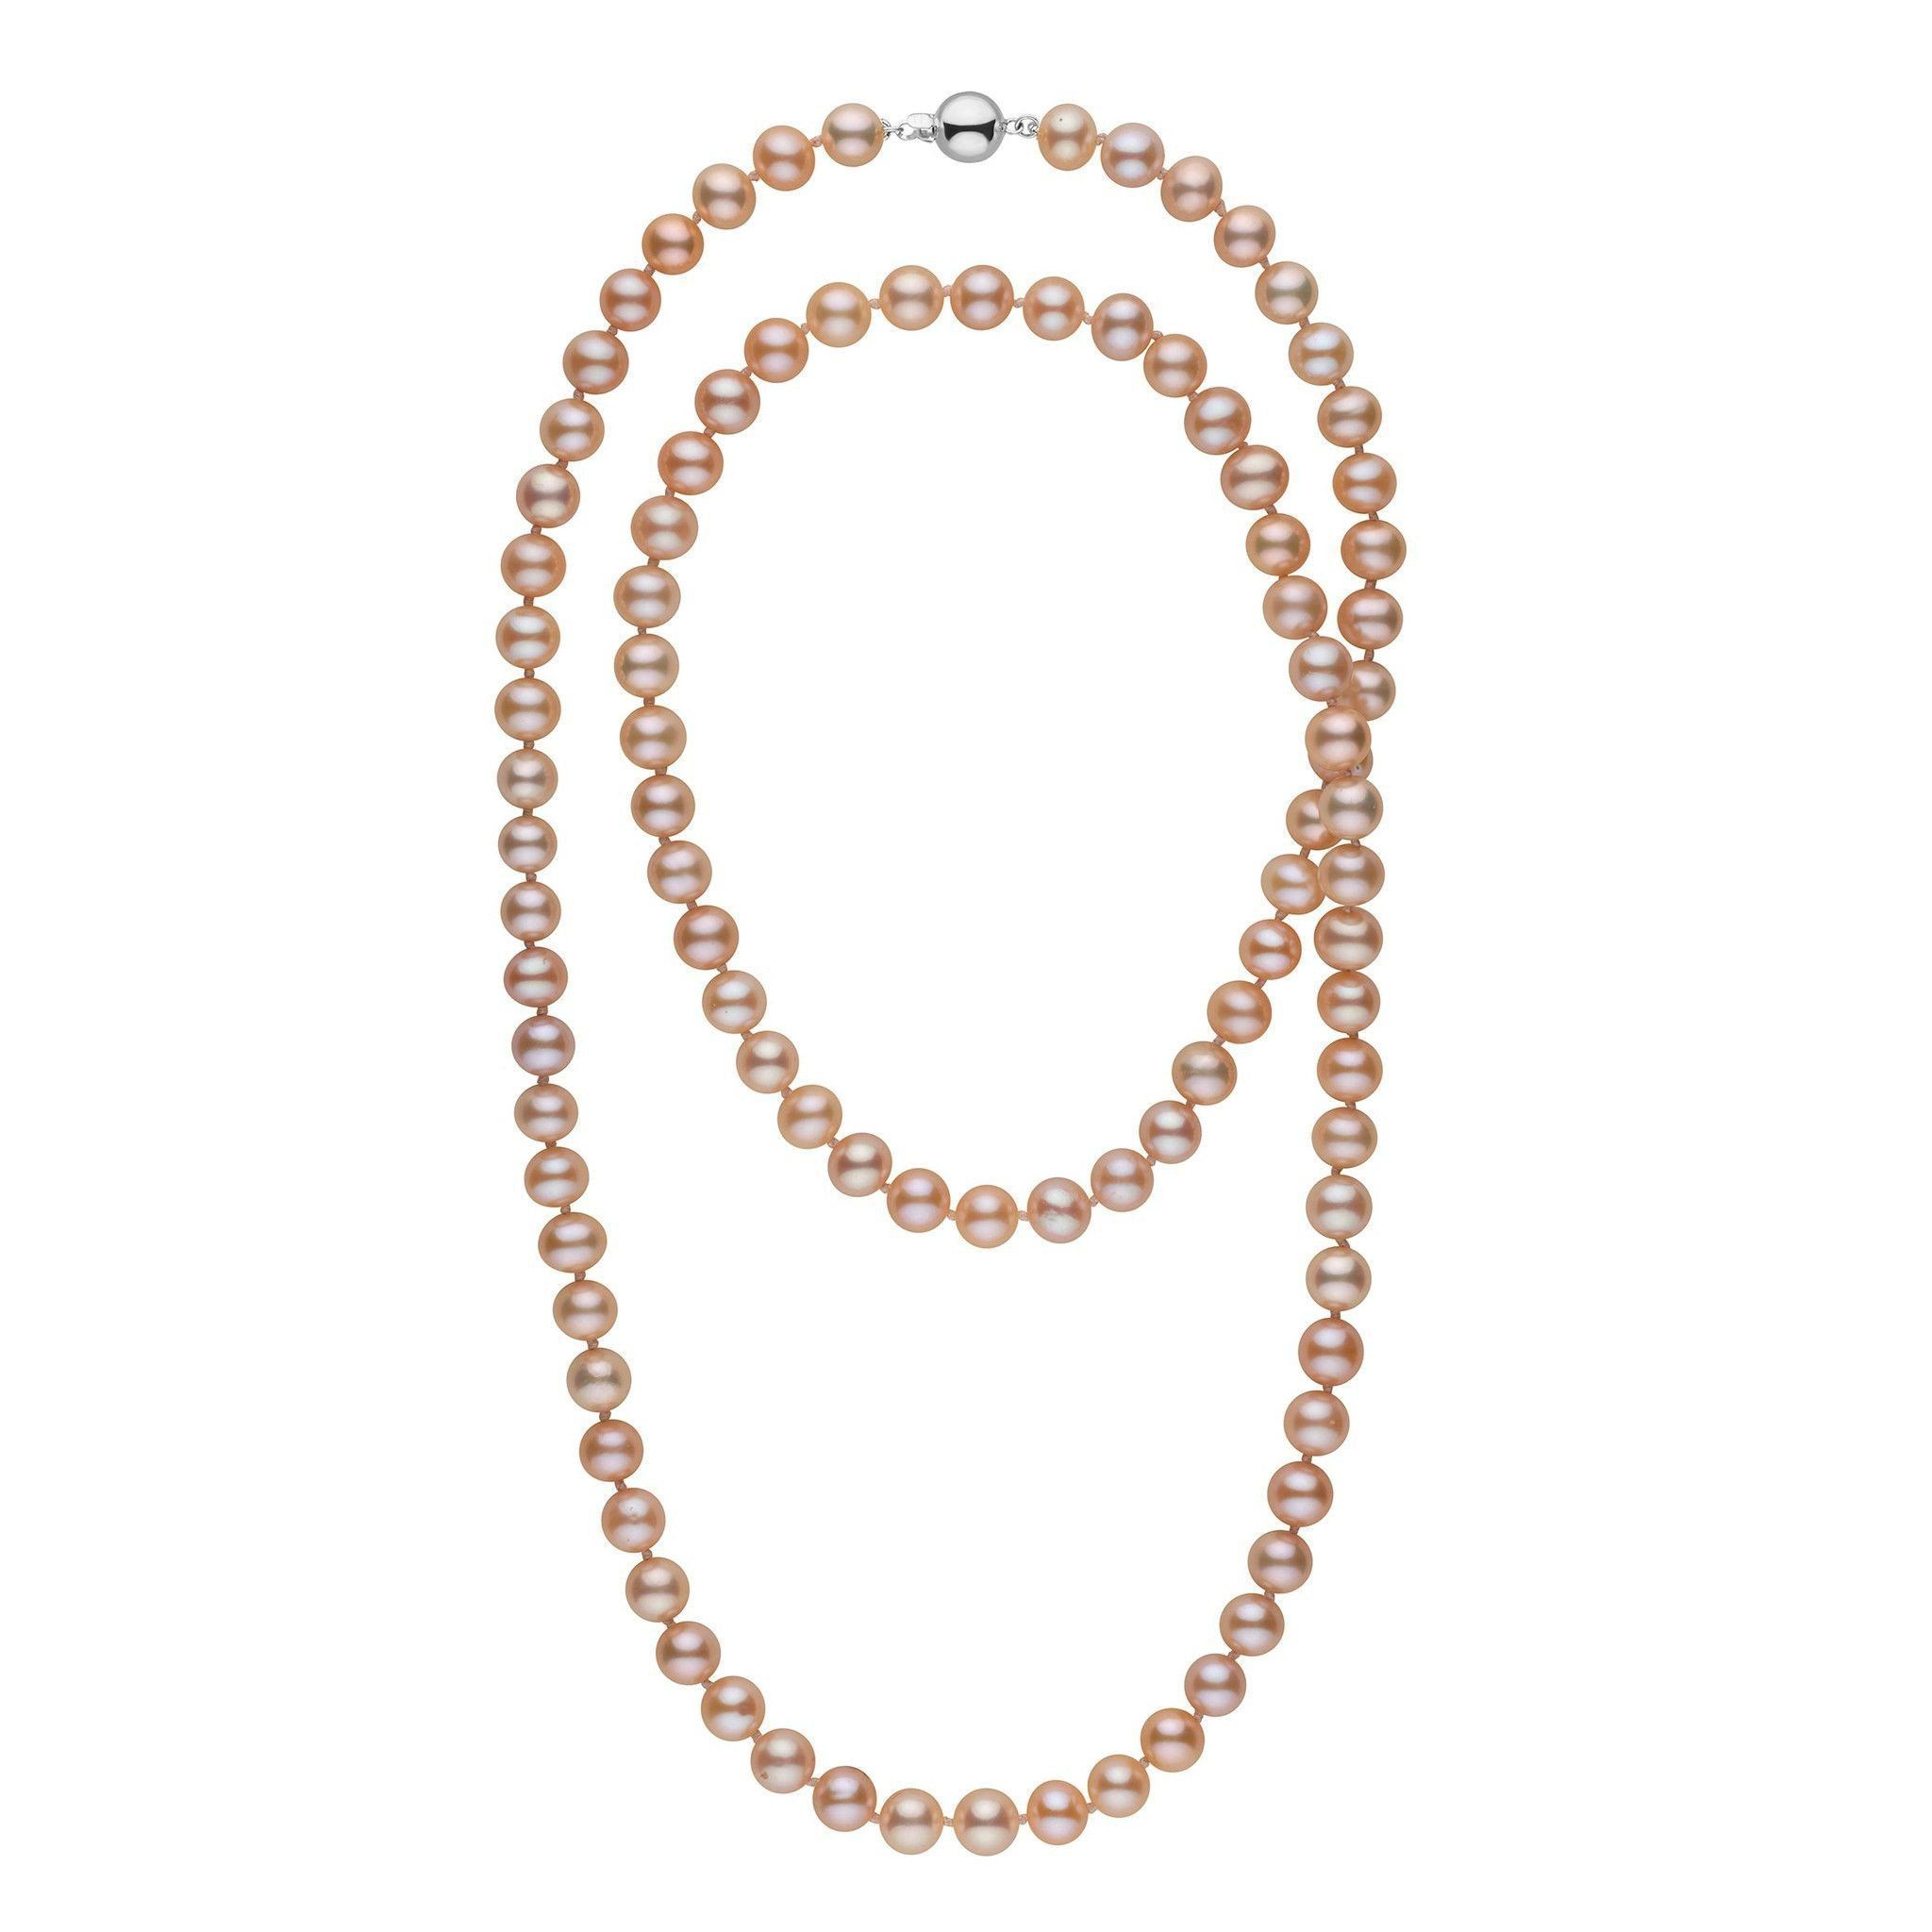 35-inch 8.5-9.0 mm AAA Pink to Peach Freshwater Pearl Necklace